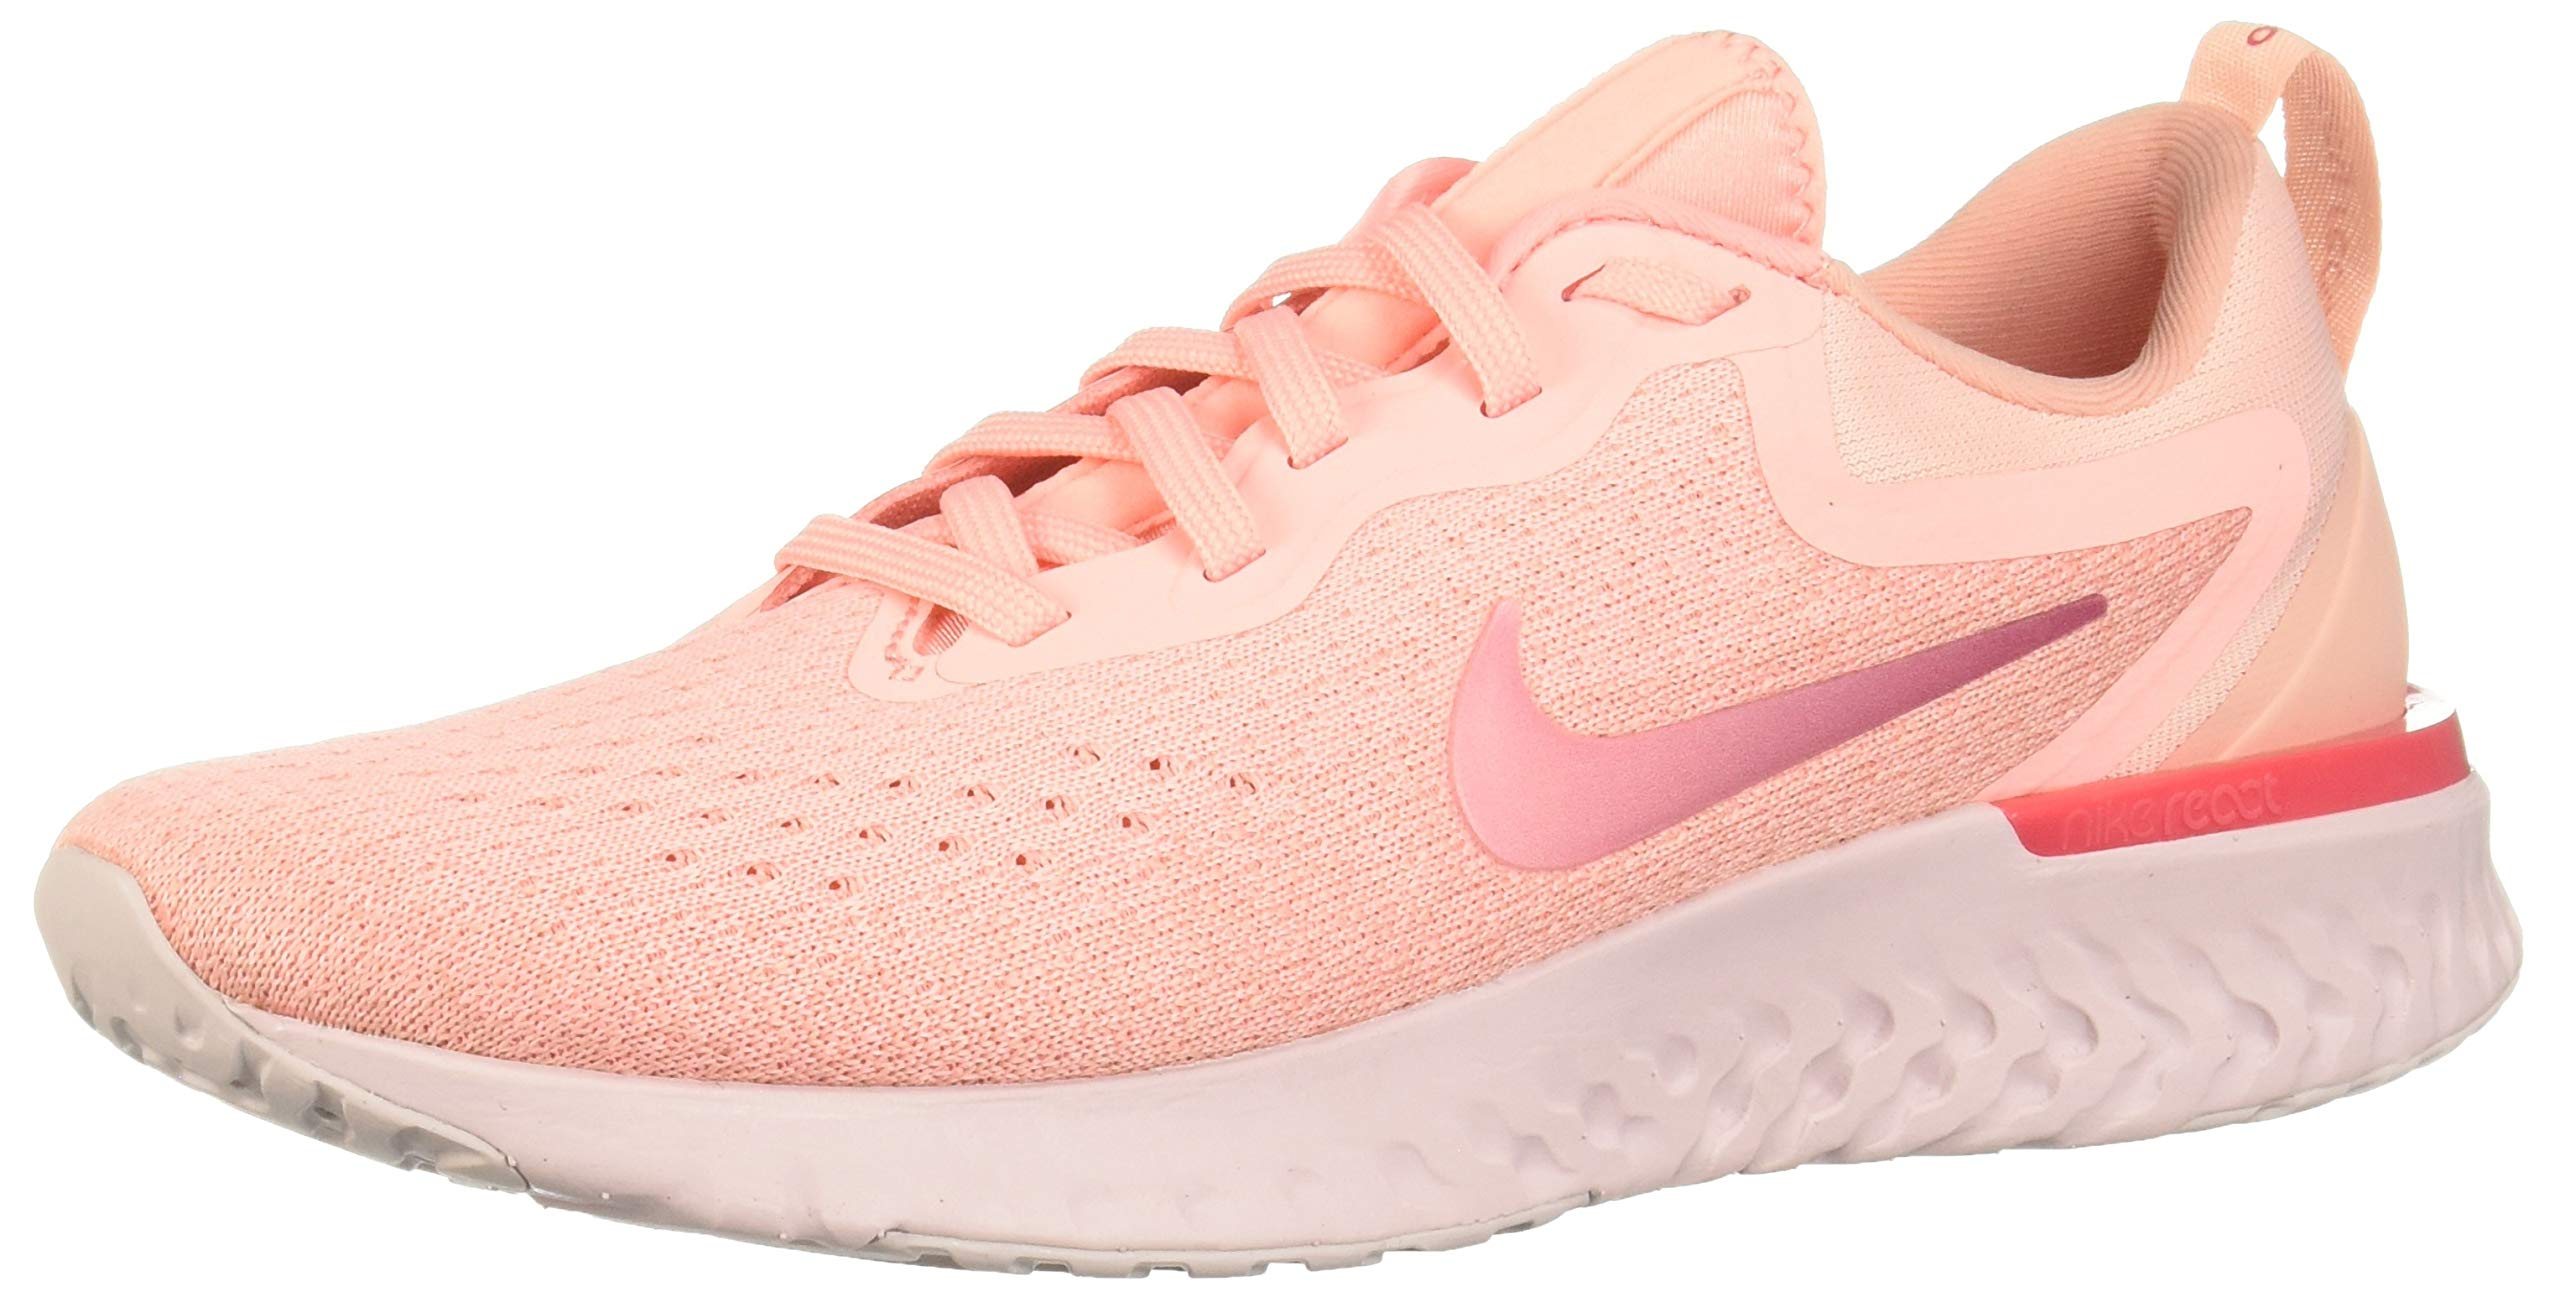 separation shoes 972c9 3389f Nike Women's Odyssey React Running Shoe Oracle Pink/Pink Tint/Coral  Stardust Size 8 M US